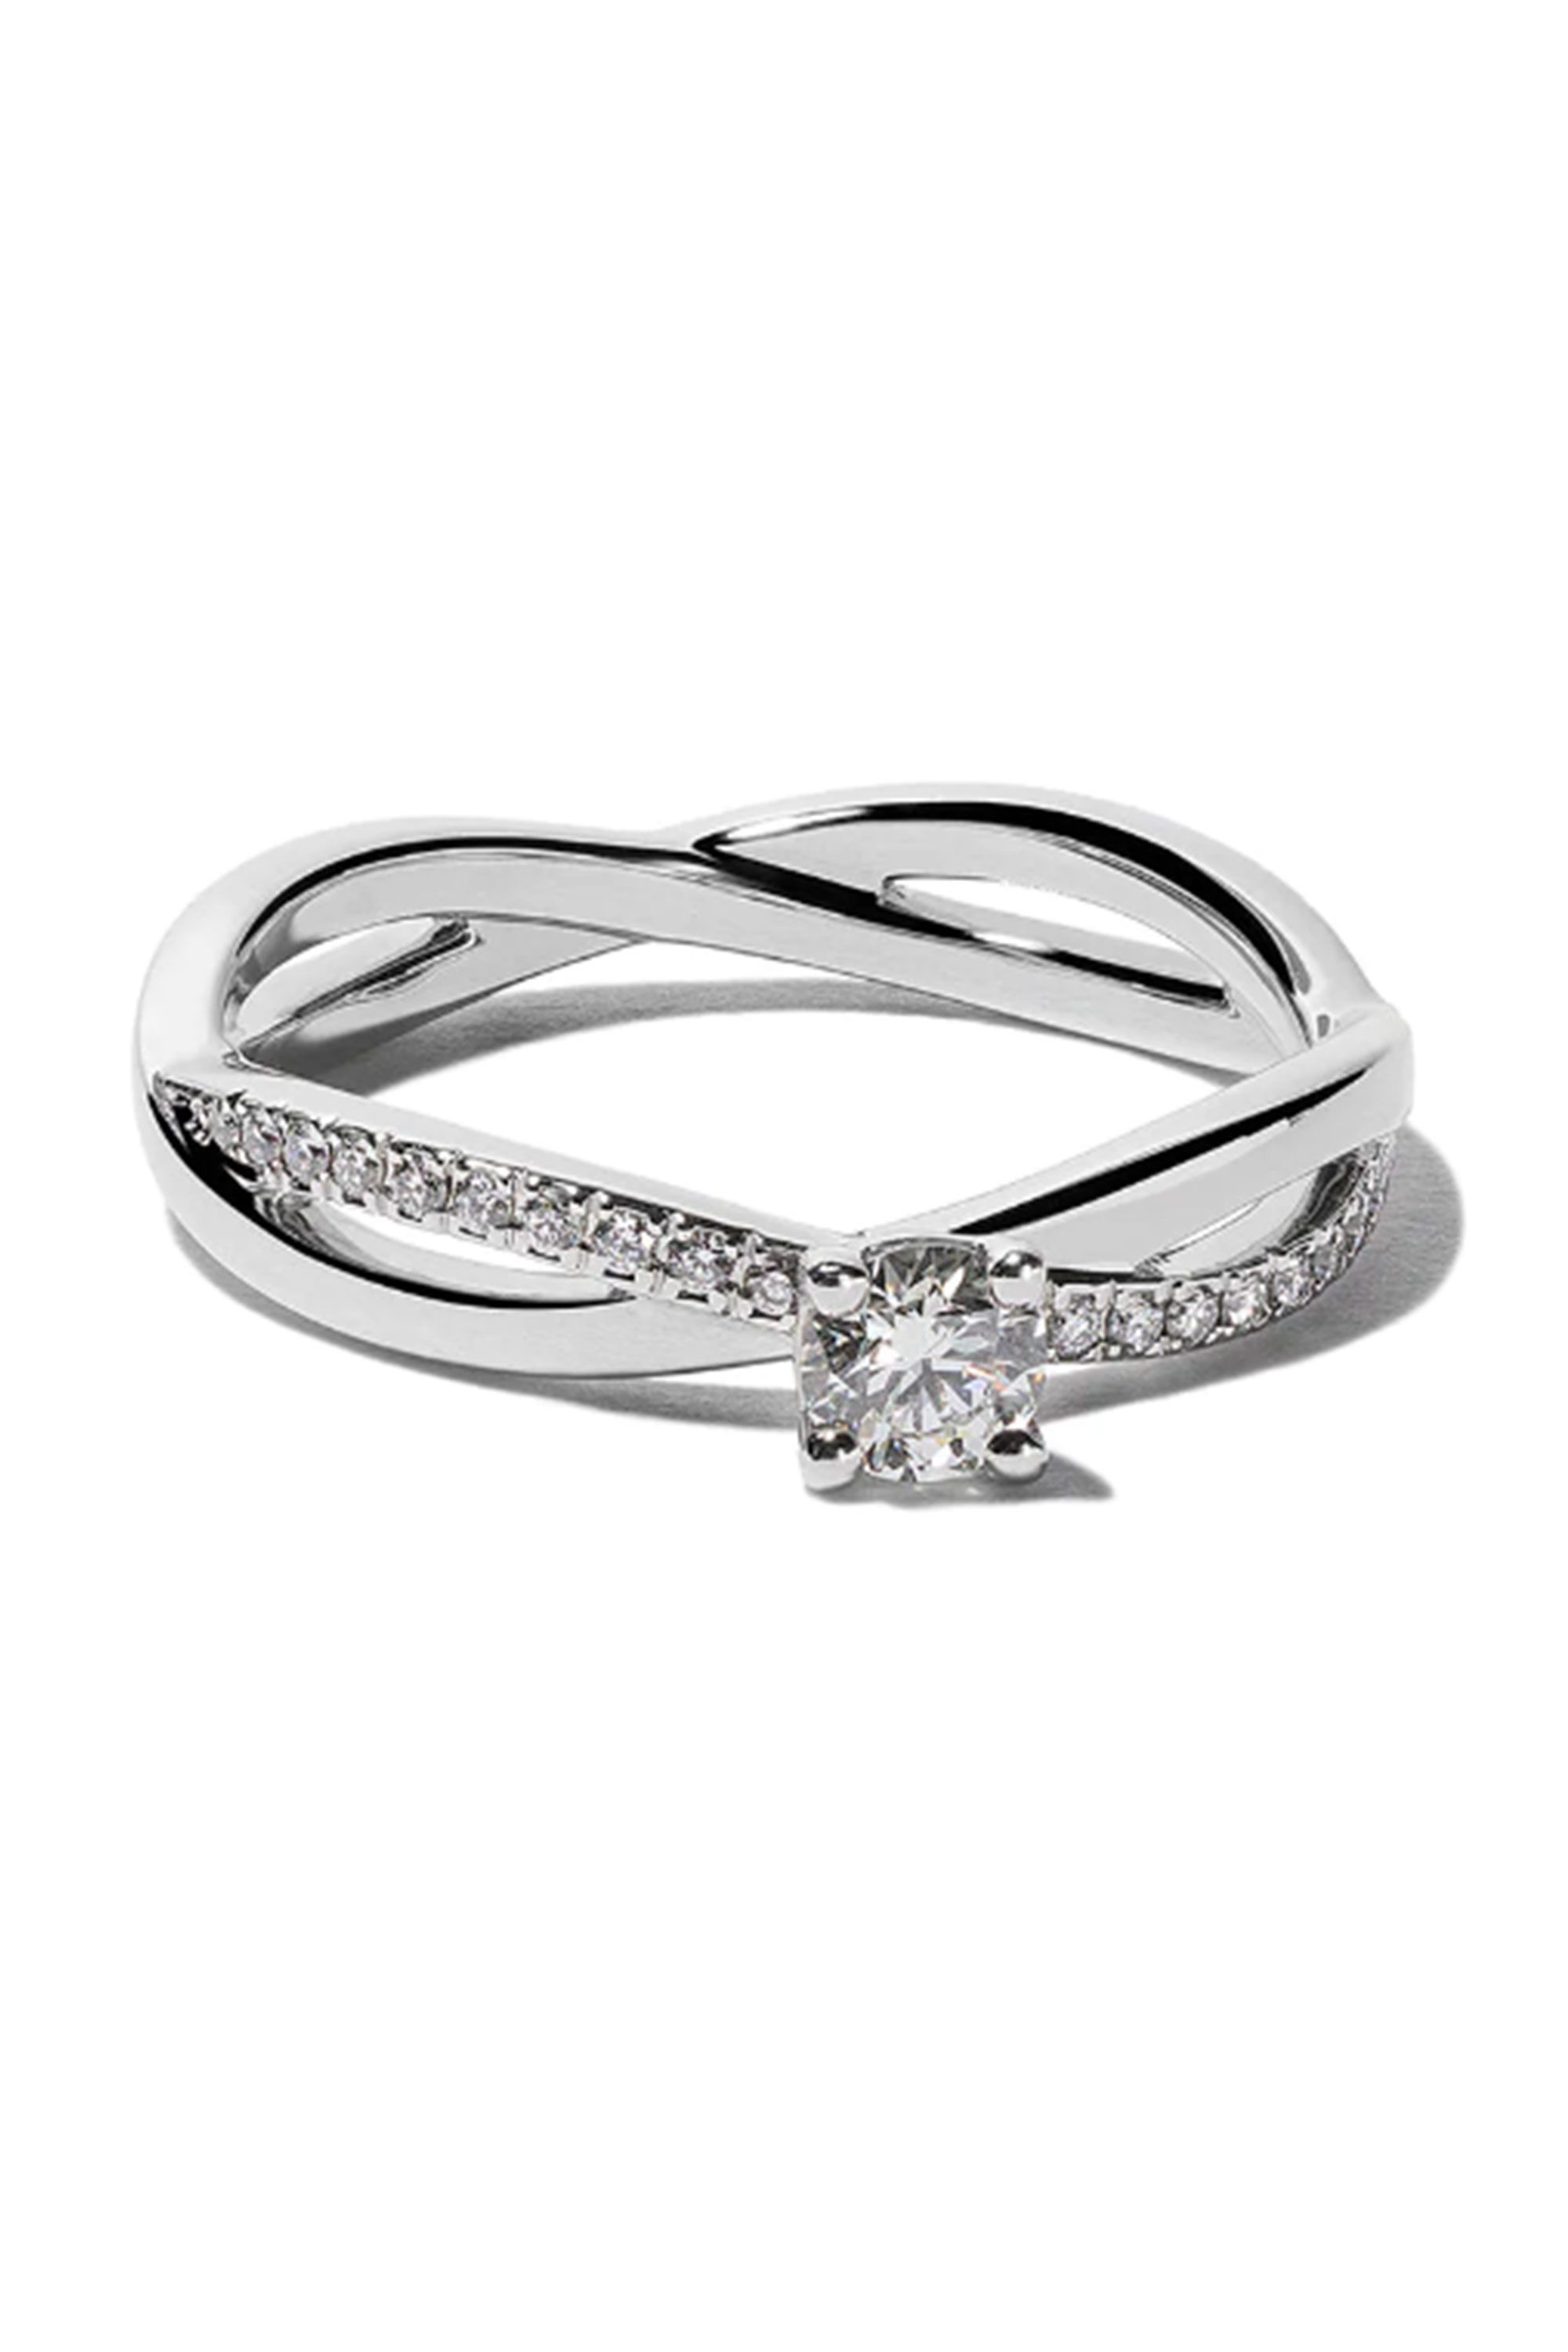 87b7eac95f85 Our guide to the best engagement rings - designer and classic engagement  rings